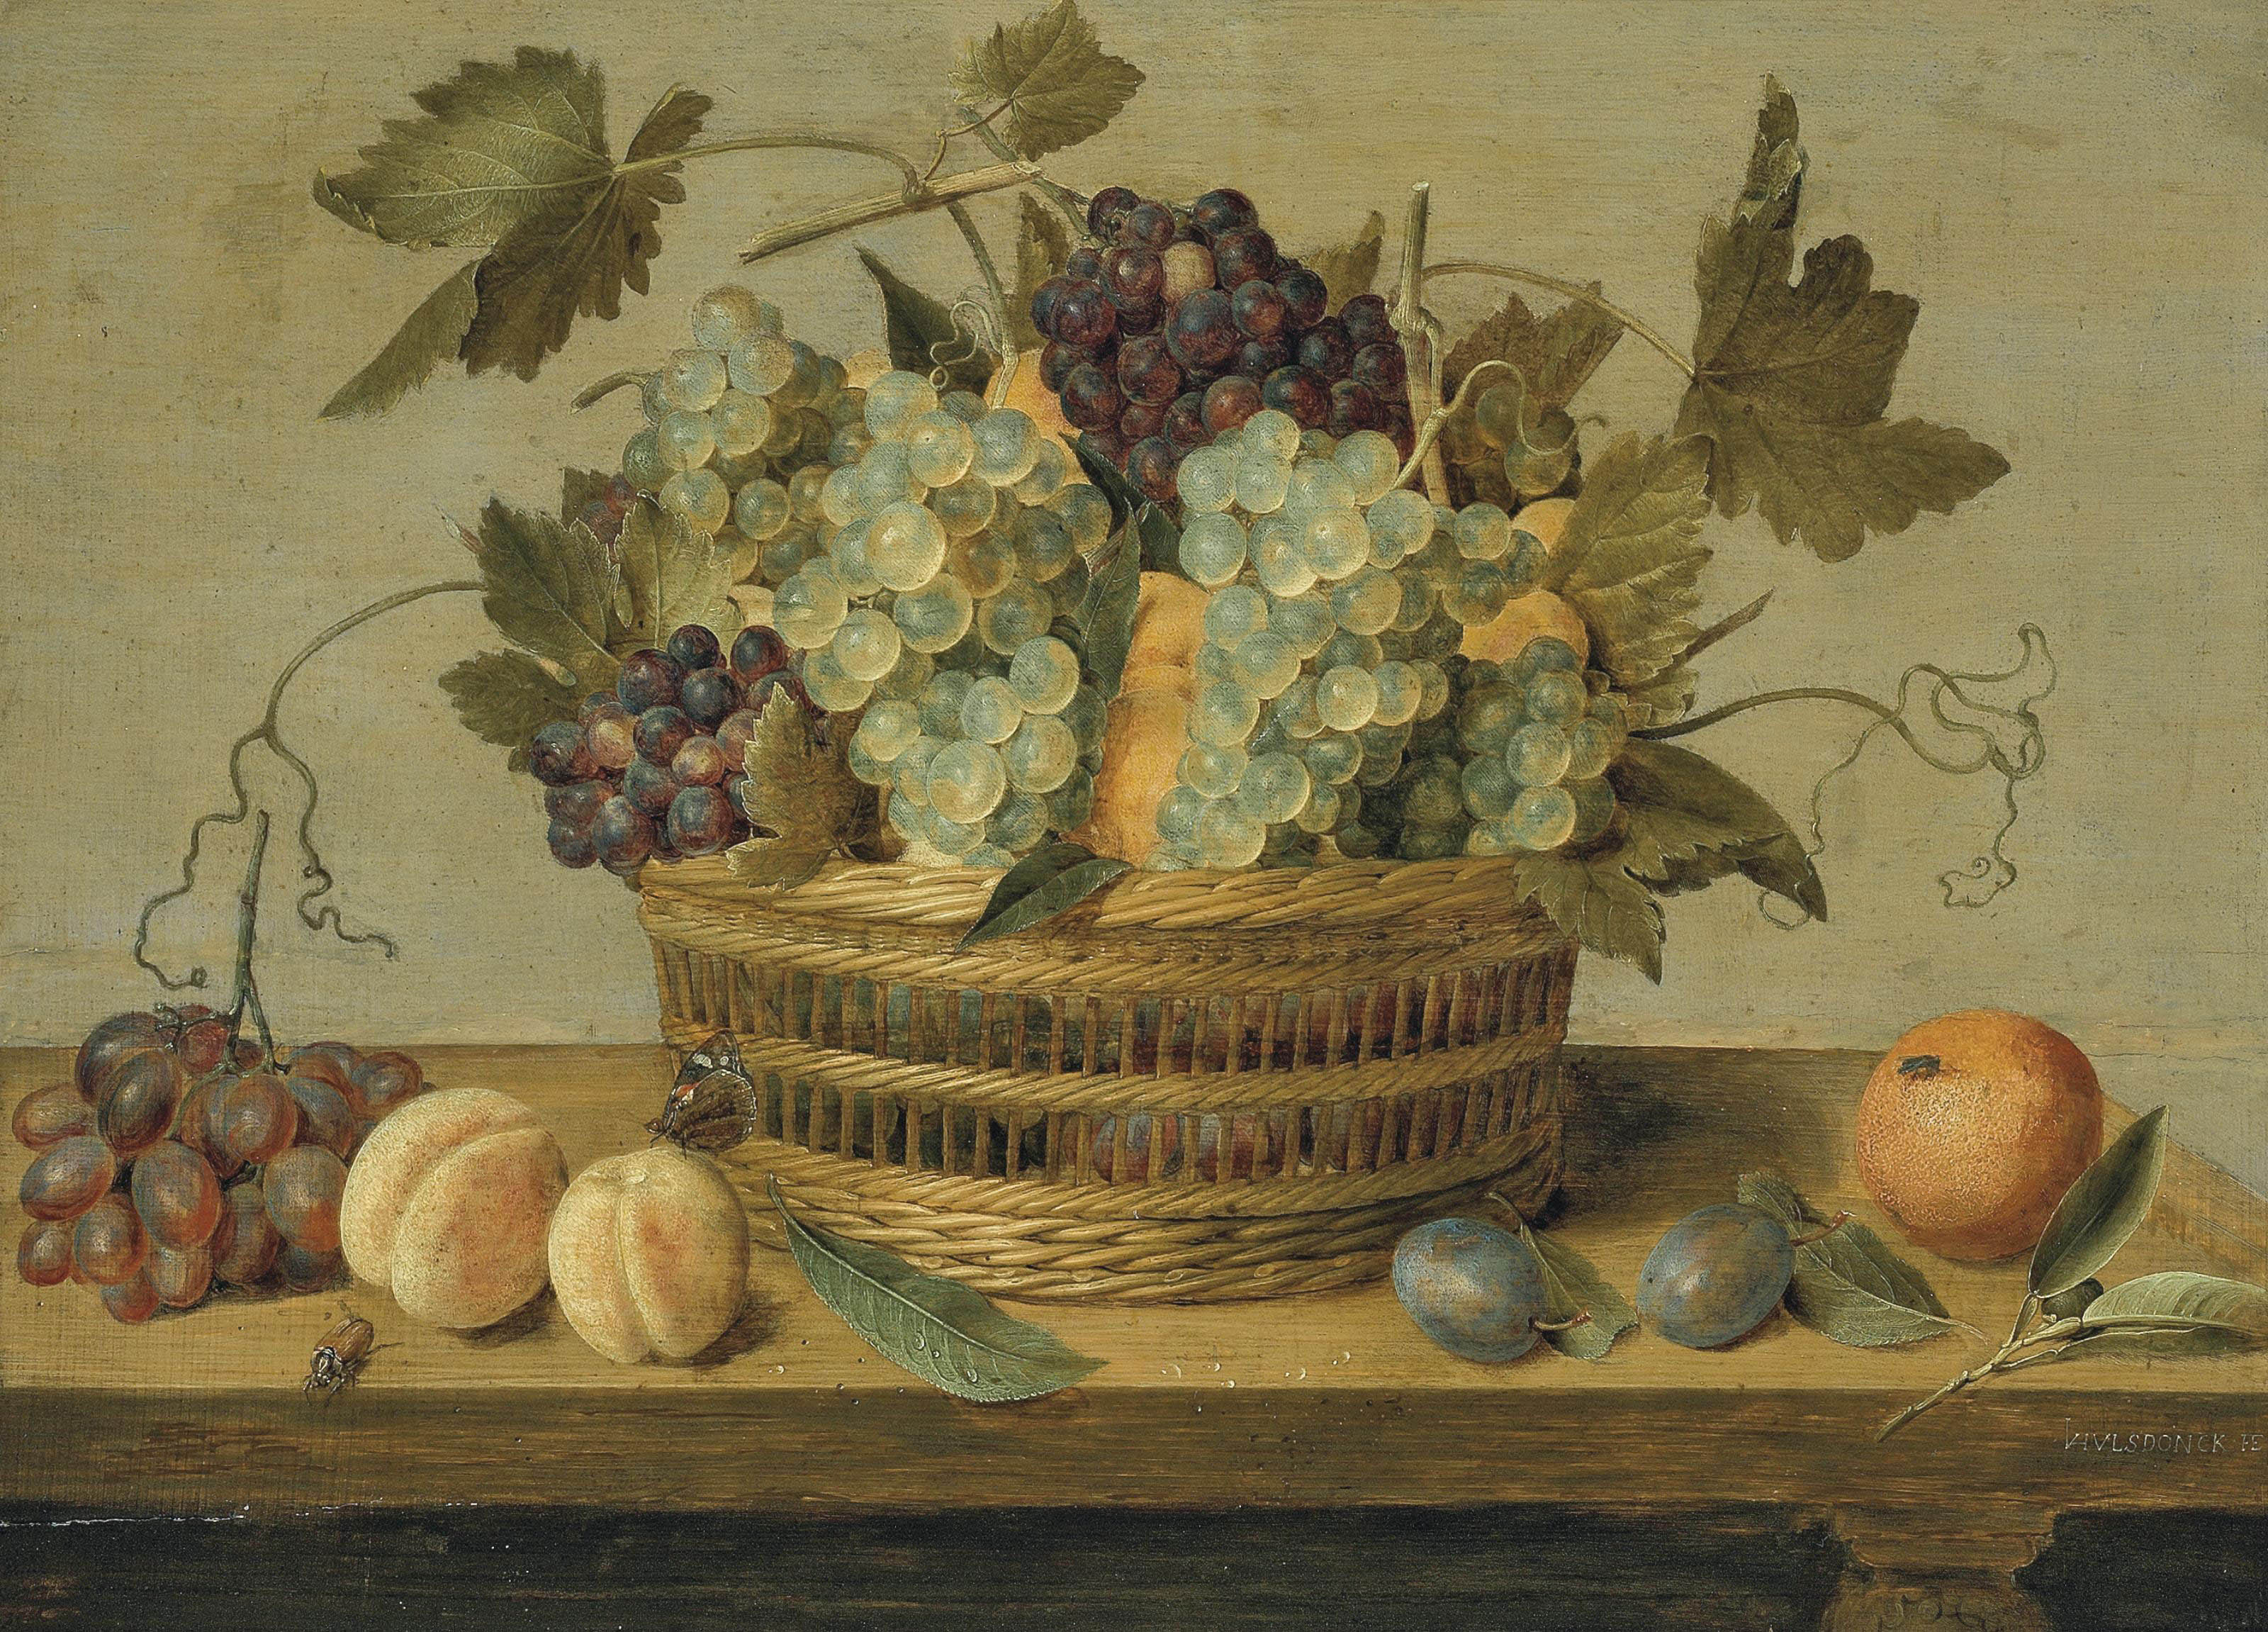 Nectarines and grapes in a basket on a table, with plums, oranges, a butterfly and a beetle